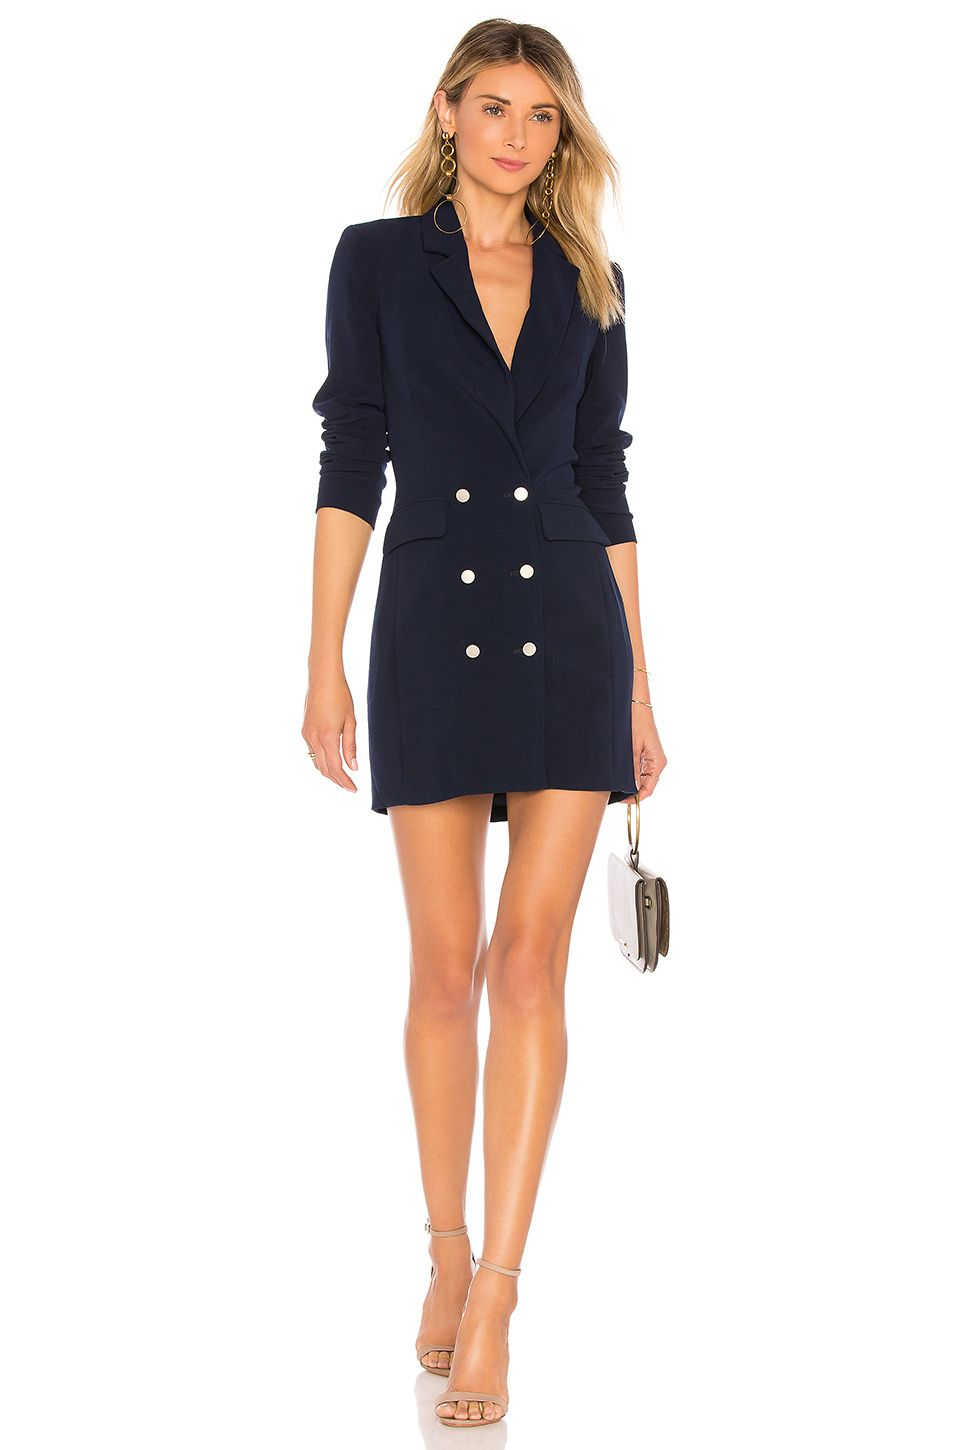 0fa36c5f20711 MADELINE BLAZER DRESS BY THE WAY. by the way. https   go.magik.ly ml dtgj